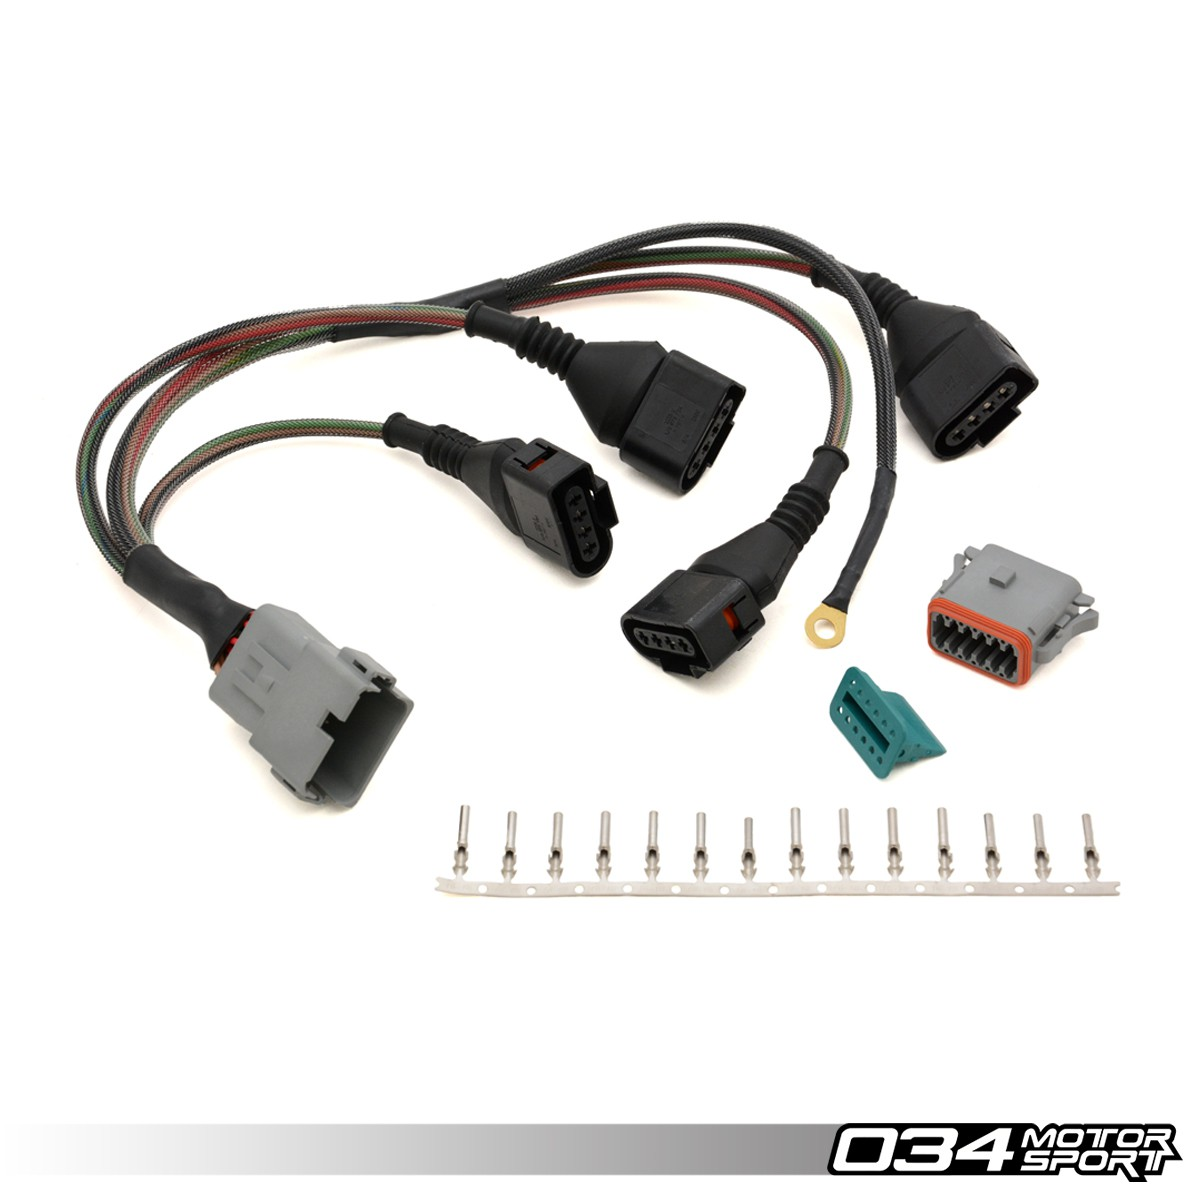 Repair/Update Harness, Audi/Volkswagen 1.8T with 4-Wire Coils - 034 ...